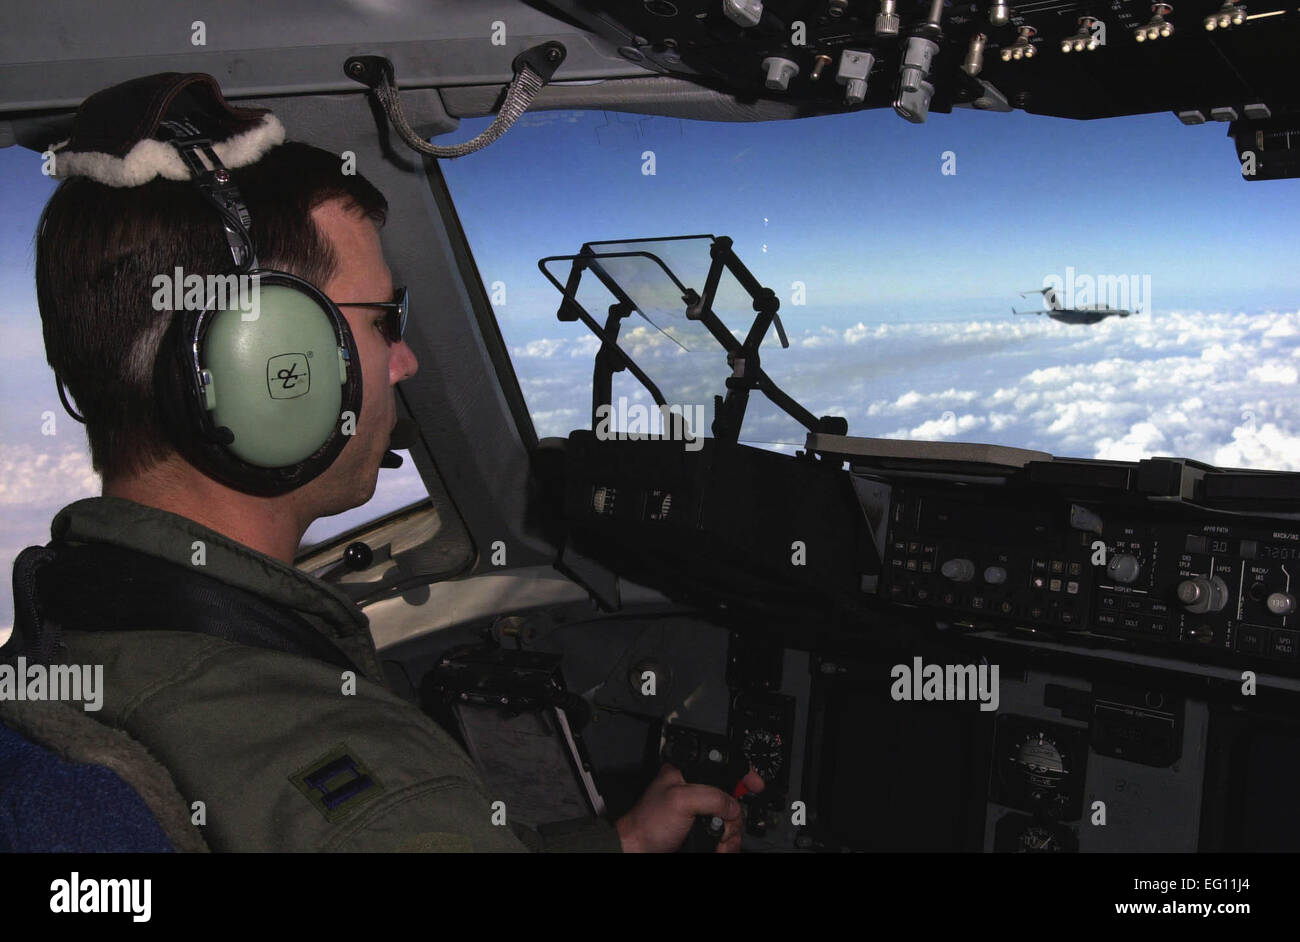 An air-to-air view from the flightdeck of a U.S. Air Force C-17 Globemaster III cargo aircraft returning to Germany Stock Photo